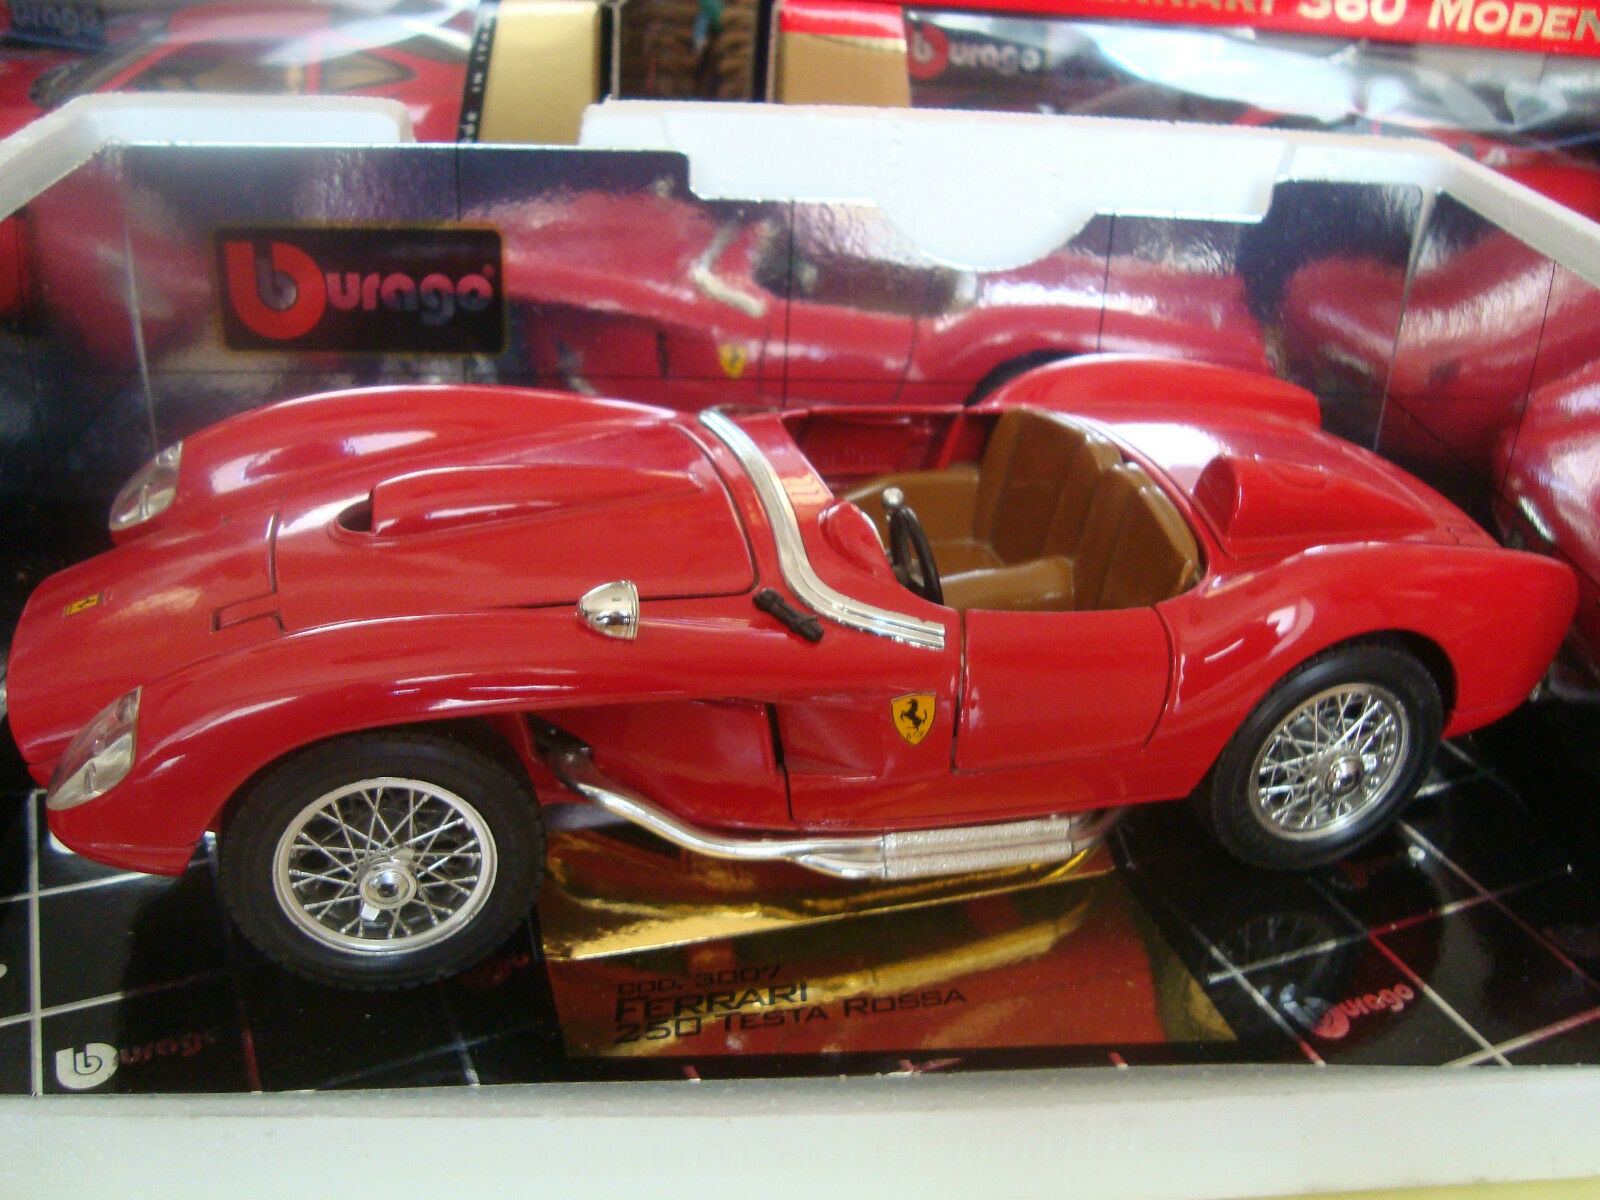 FERRARI 250 HEAD ROSSA 1957 B BURAGO gold COLLECTION REF 3007 1 18 OCCASION